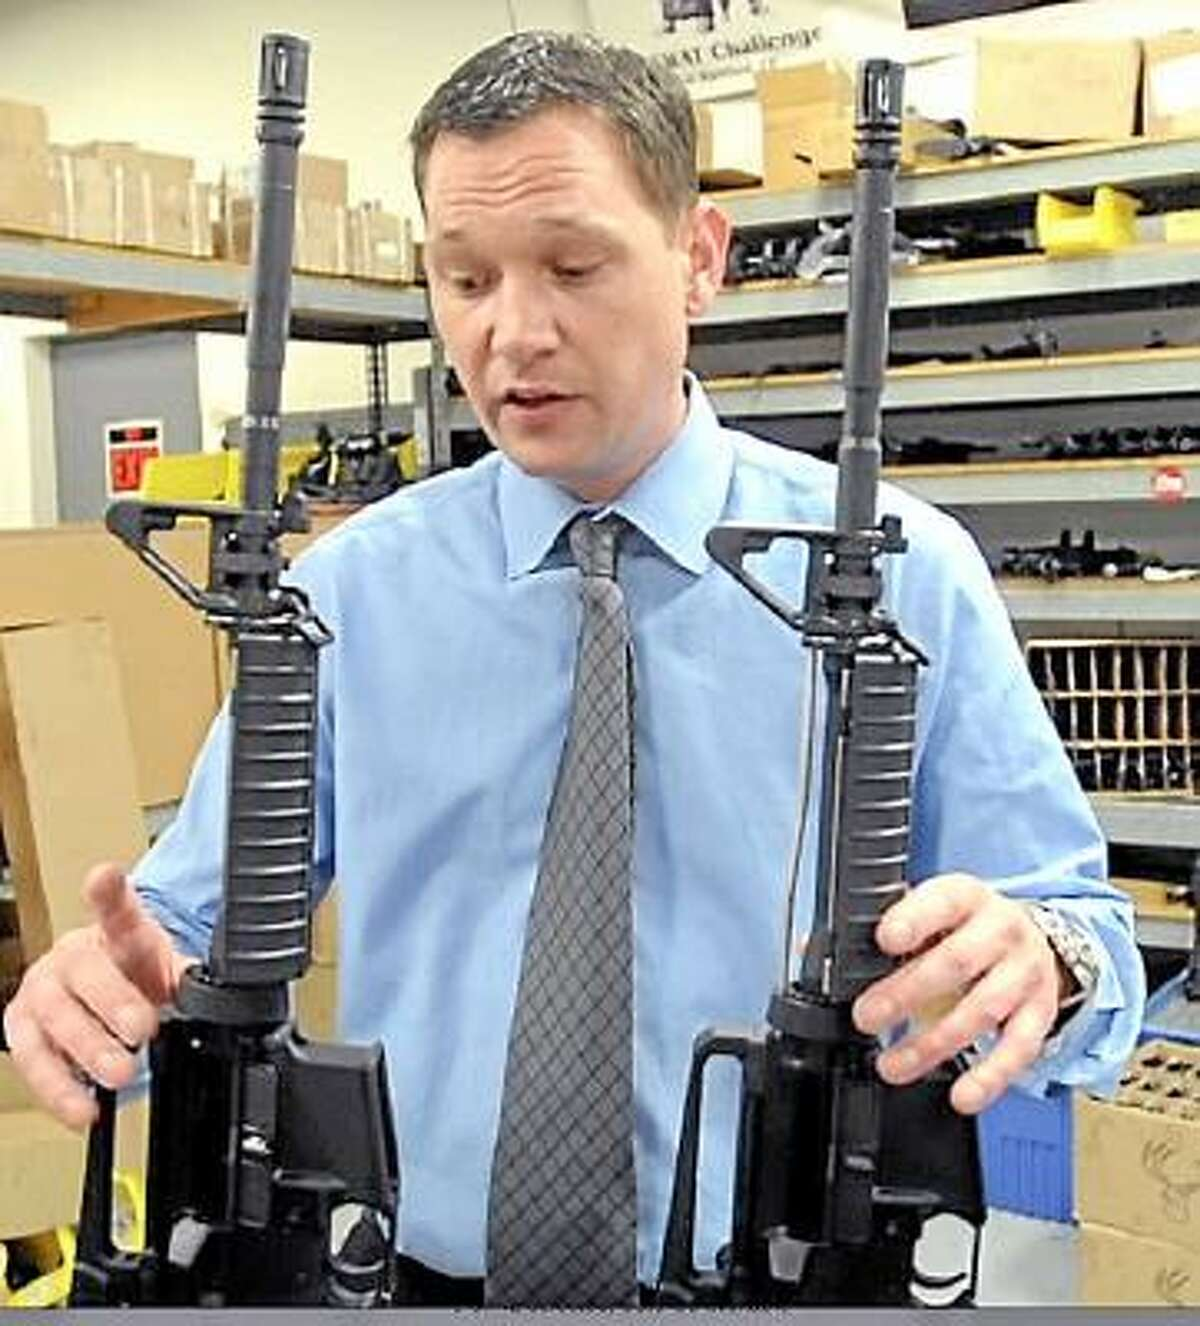 Mark Malkowski, President and CEO of Stag Arms in New Britain, displays the new Stag-22, left, a semi-automatic .22 rifle, an AR-15 looking product built from all AR-15 upper and lower components manufactured at his plant in New Britain but without a gas tube and at right is Stag Arms semi-automatic AR-15 banned in Connecticut. Thursday May 9, 2013. .Photo by Peter Hvizdak / New Haven Register